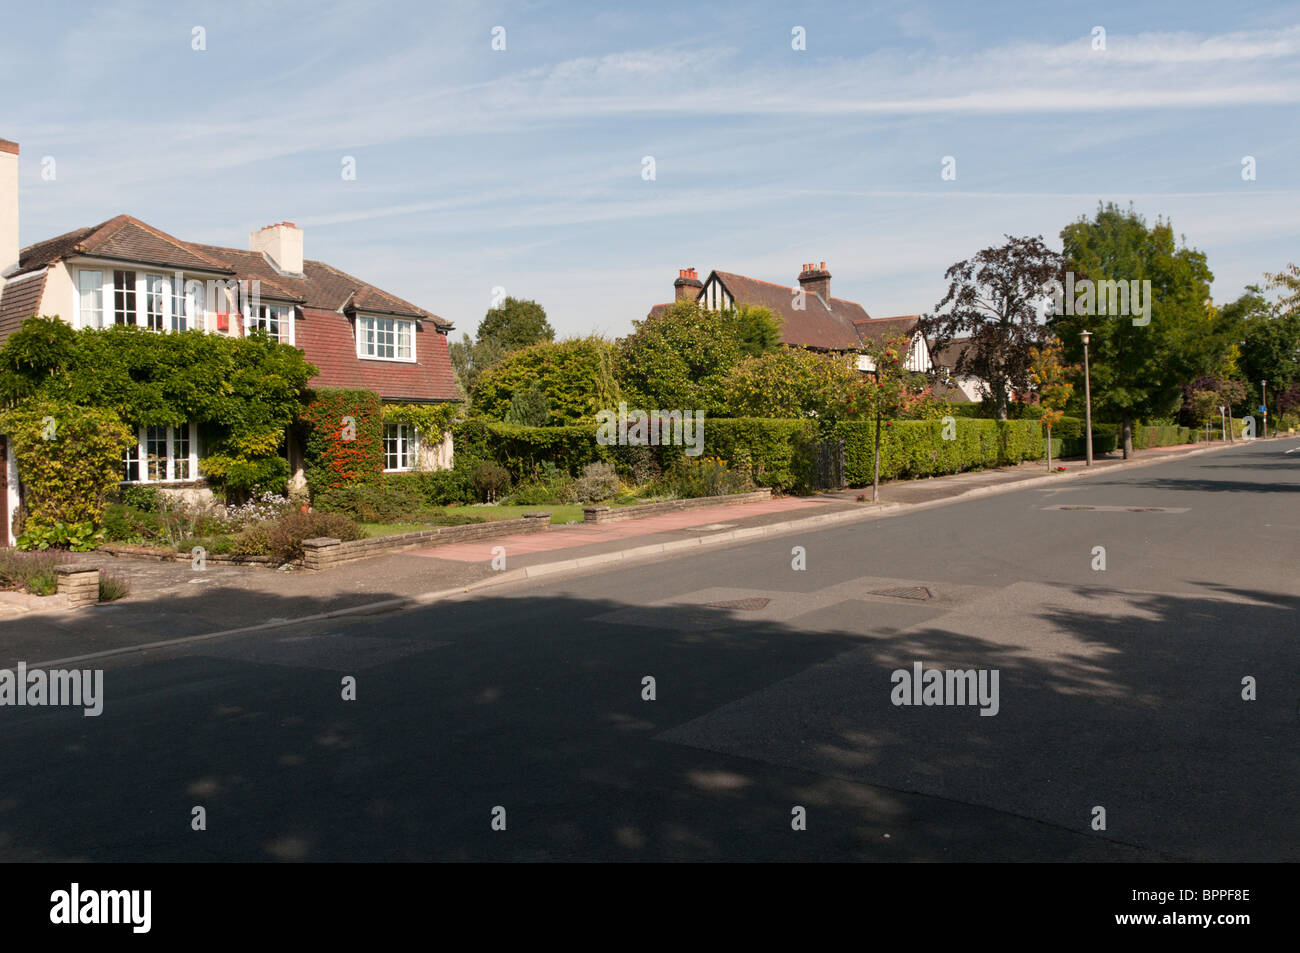 Whitecroft Way in the Park Langley Conservation Area, Bromley, Kent - Stock Image